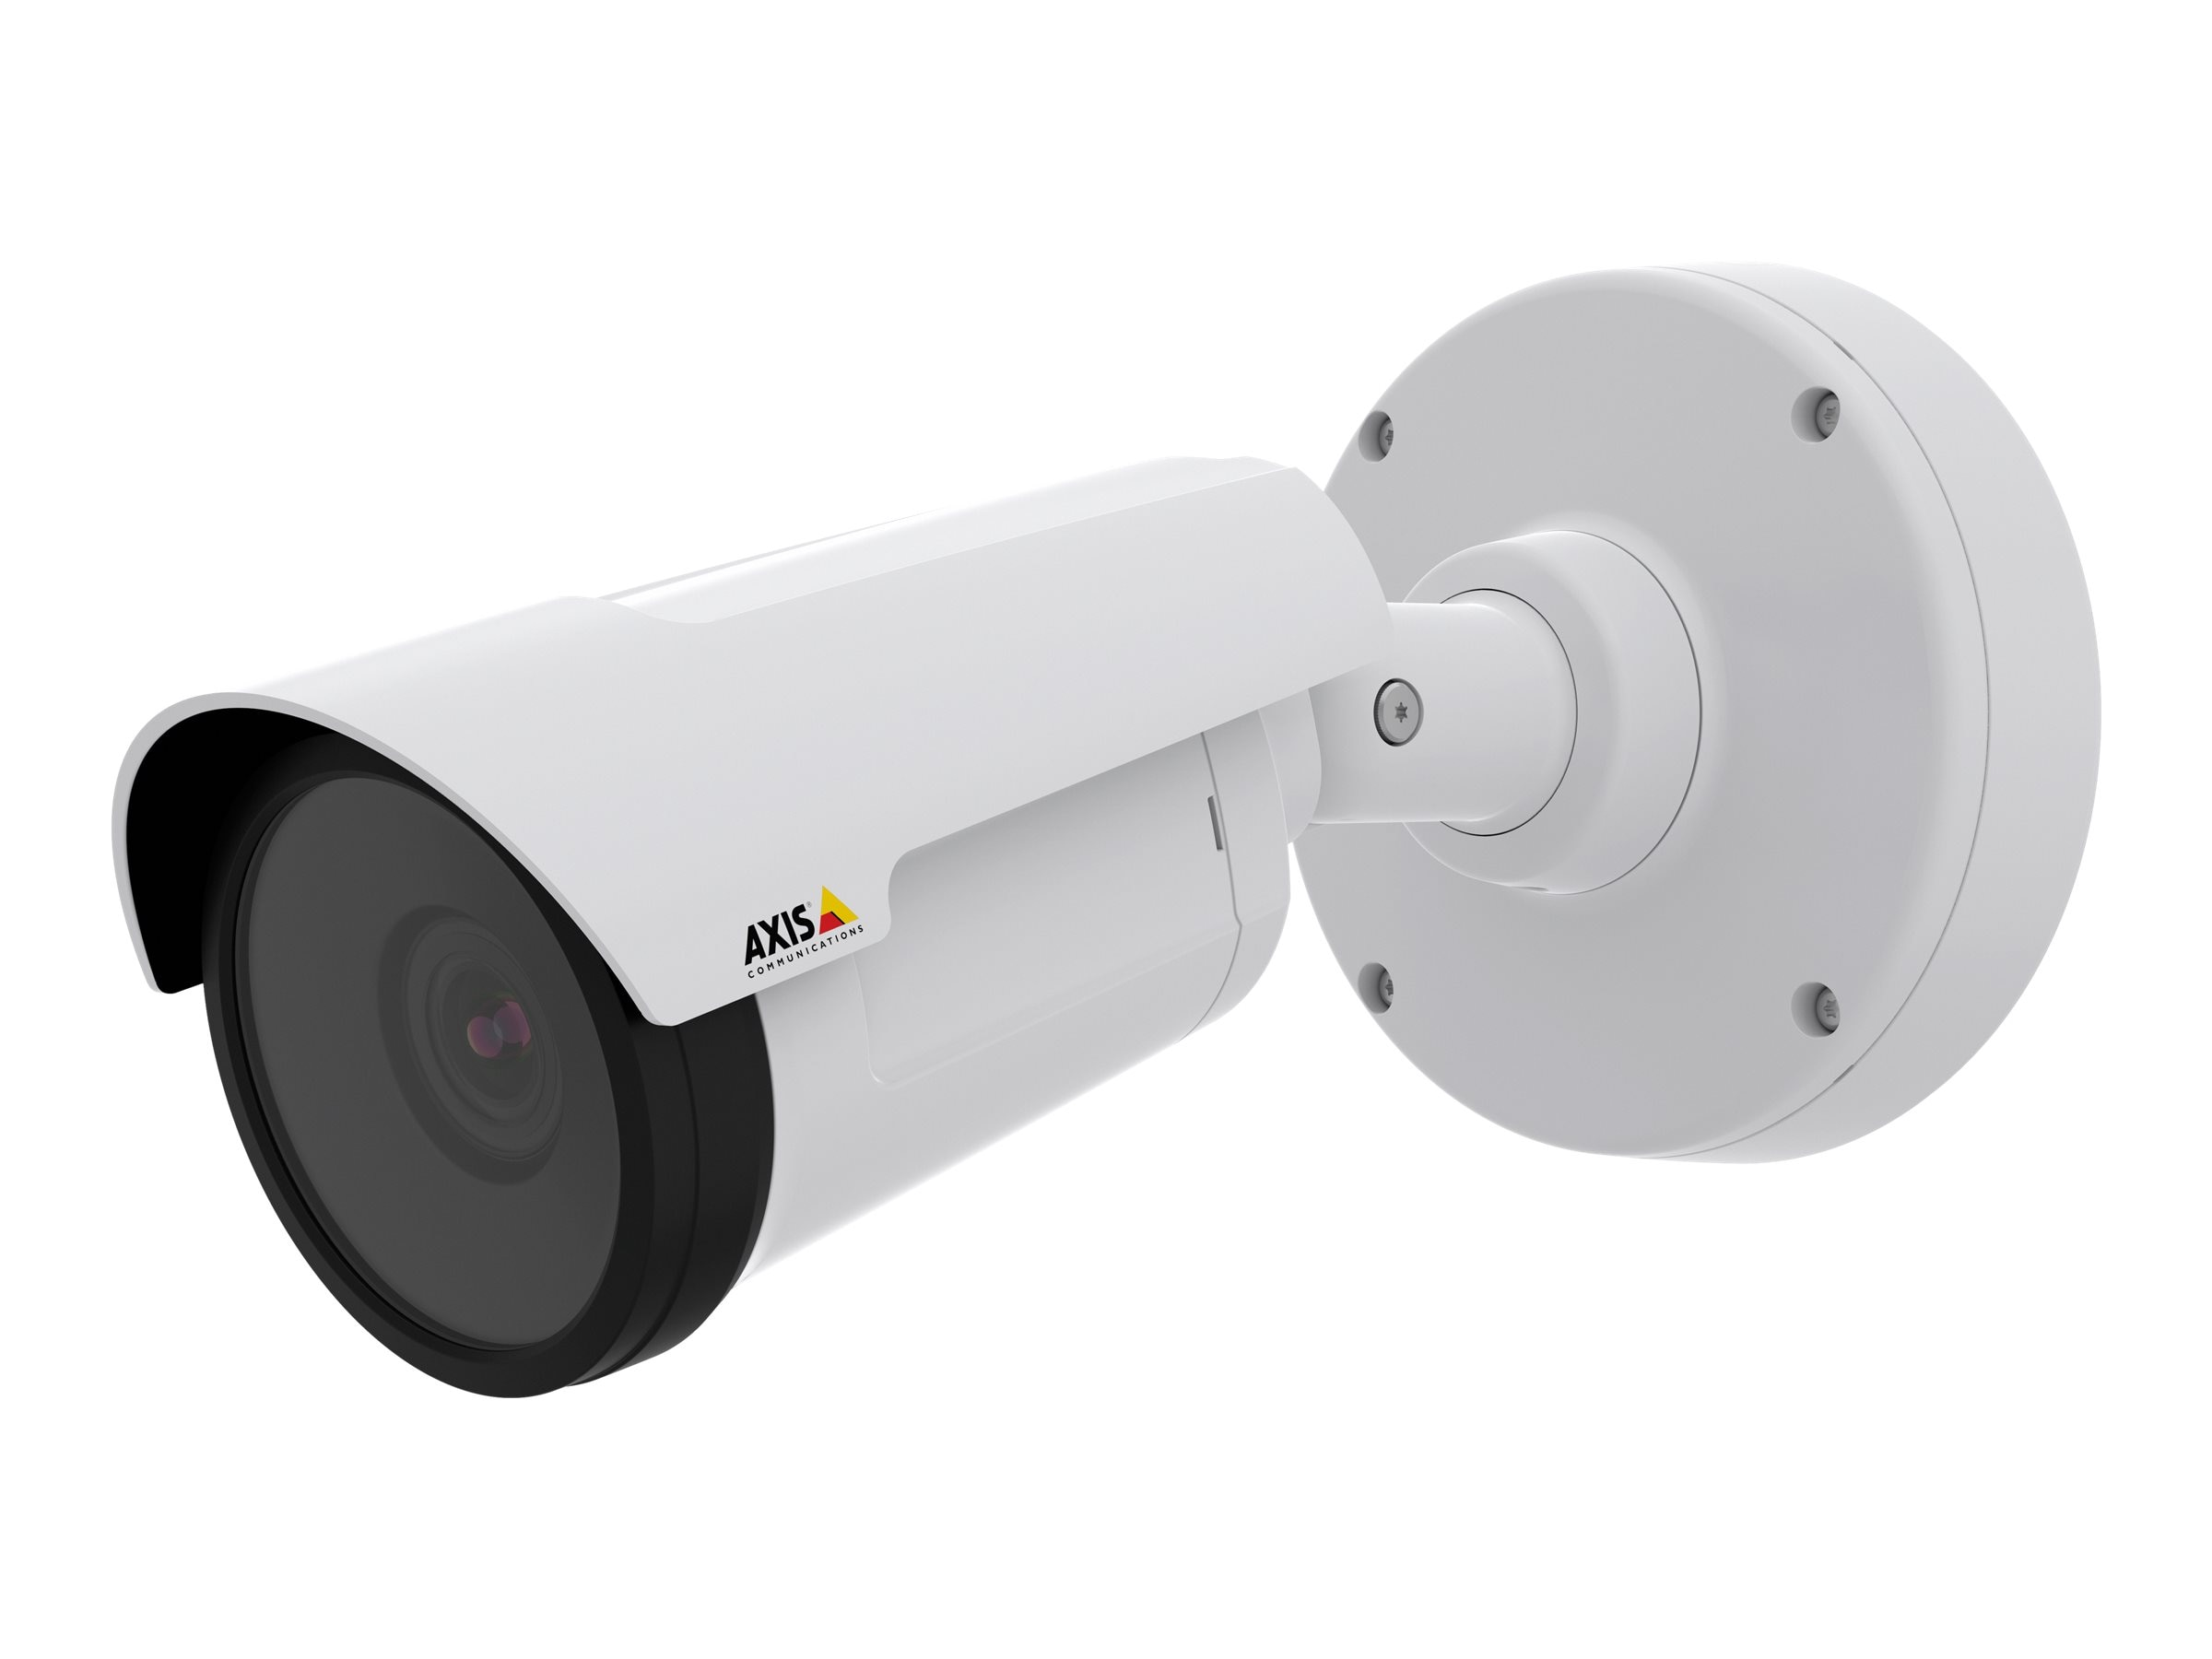 Axis P1428-E Outdoor Fixed Network Camera with 3.3-9.8mm Lens